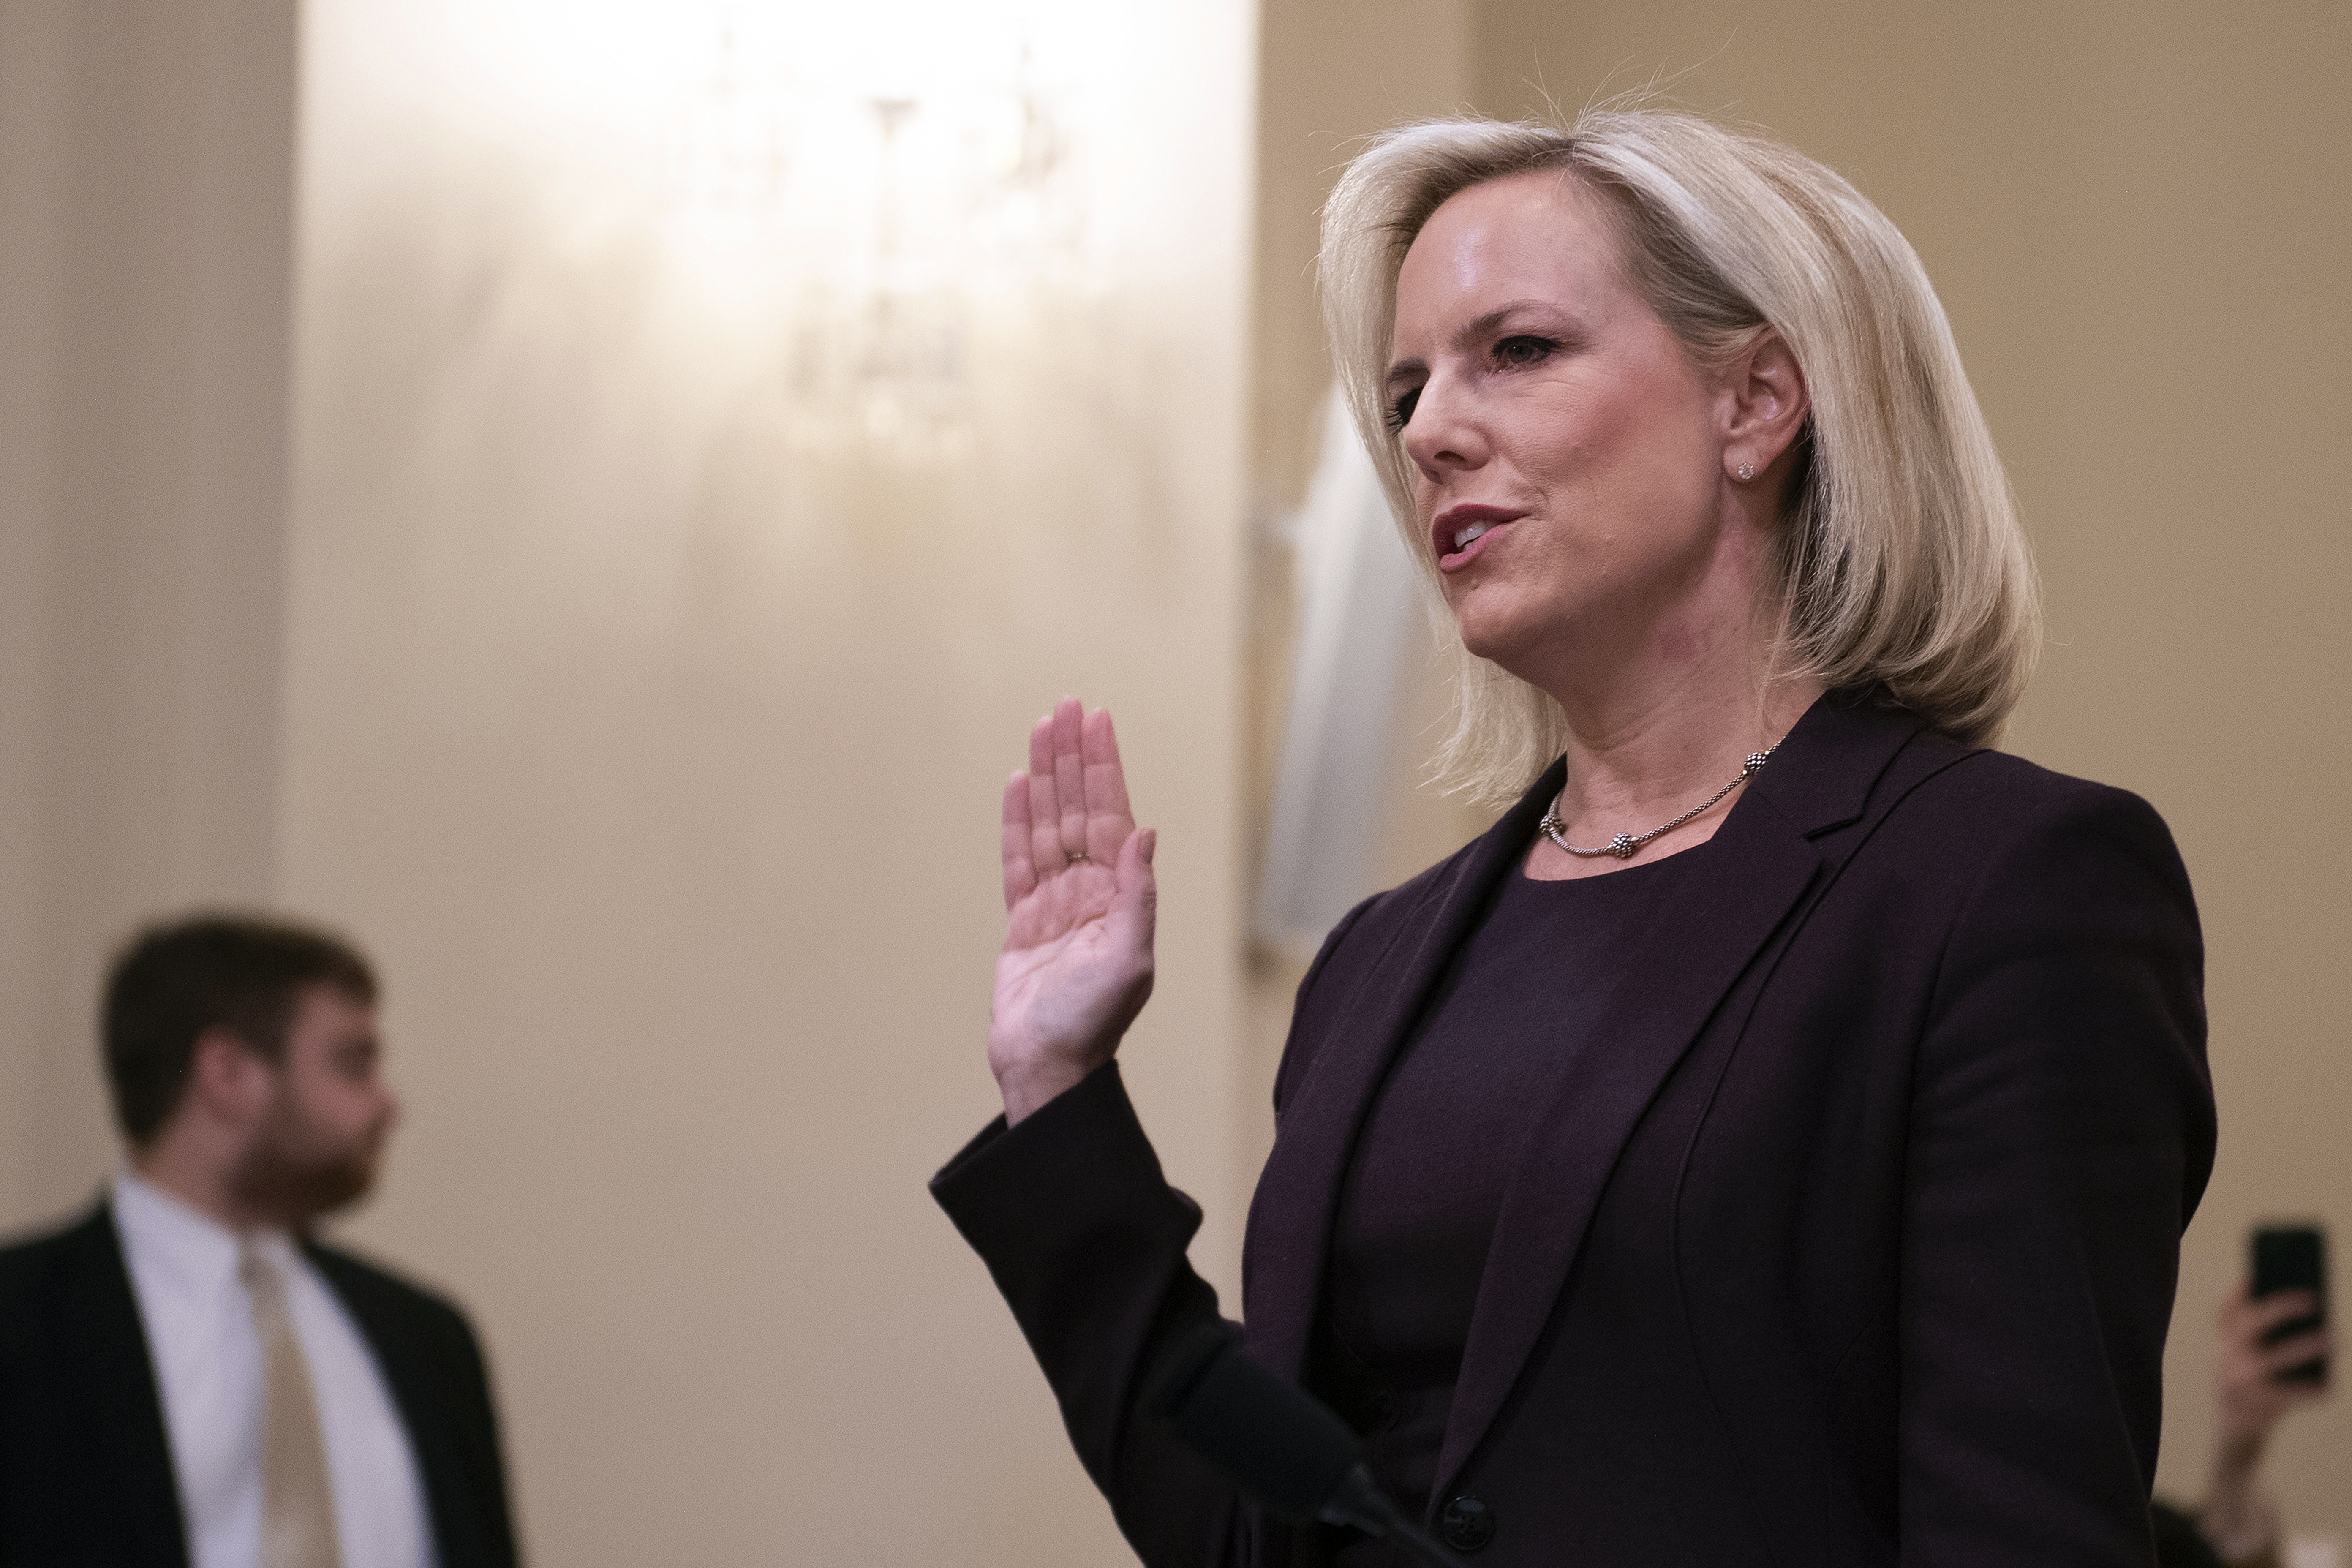 Homeland Security Secretary Kirstjen Nielsen is sworn in as she testifies before the House Homeland Security Committee on border security on Capitol Hill in Washington, DC, March 6, 2019. (Photo by JIM WATSON/AFP/Getty Images)